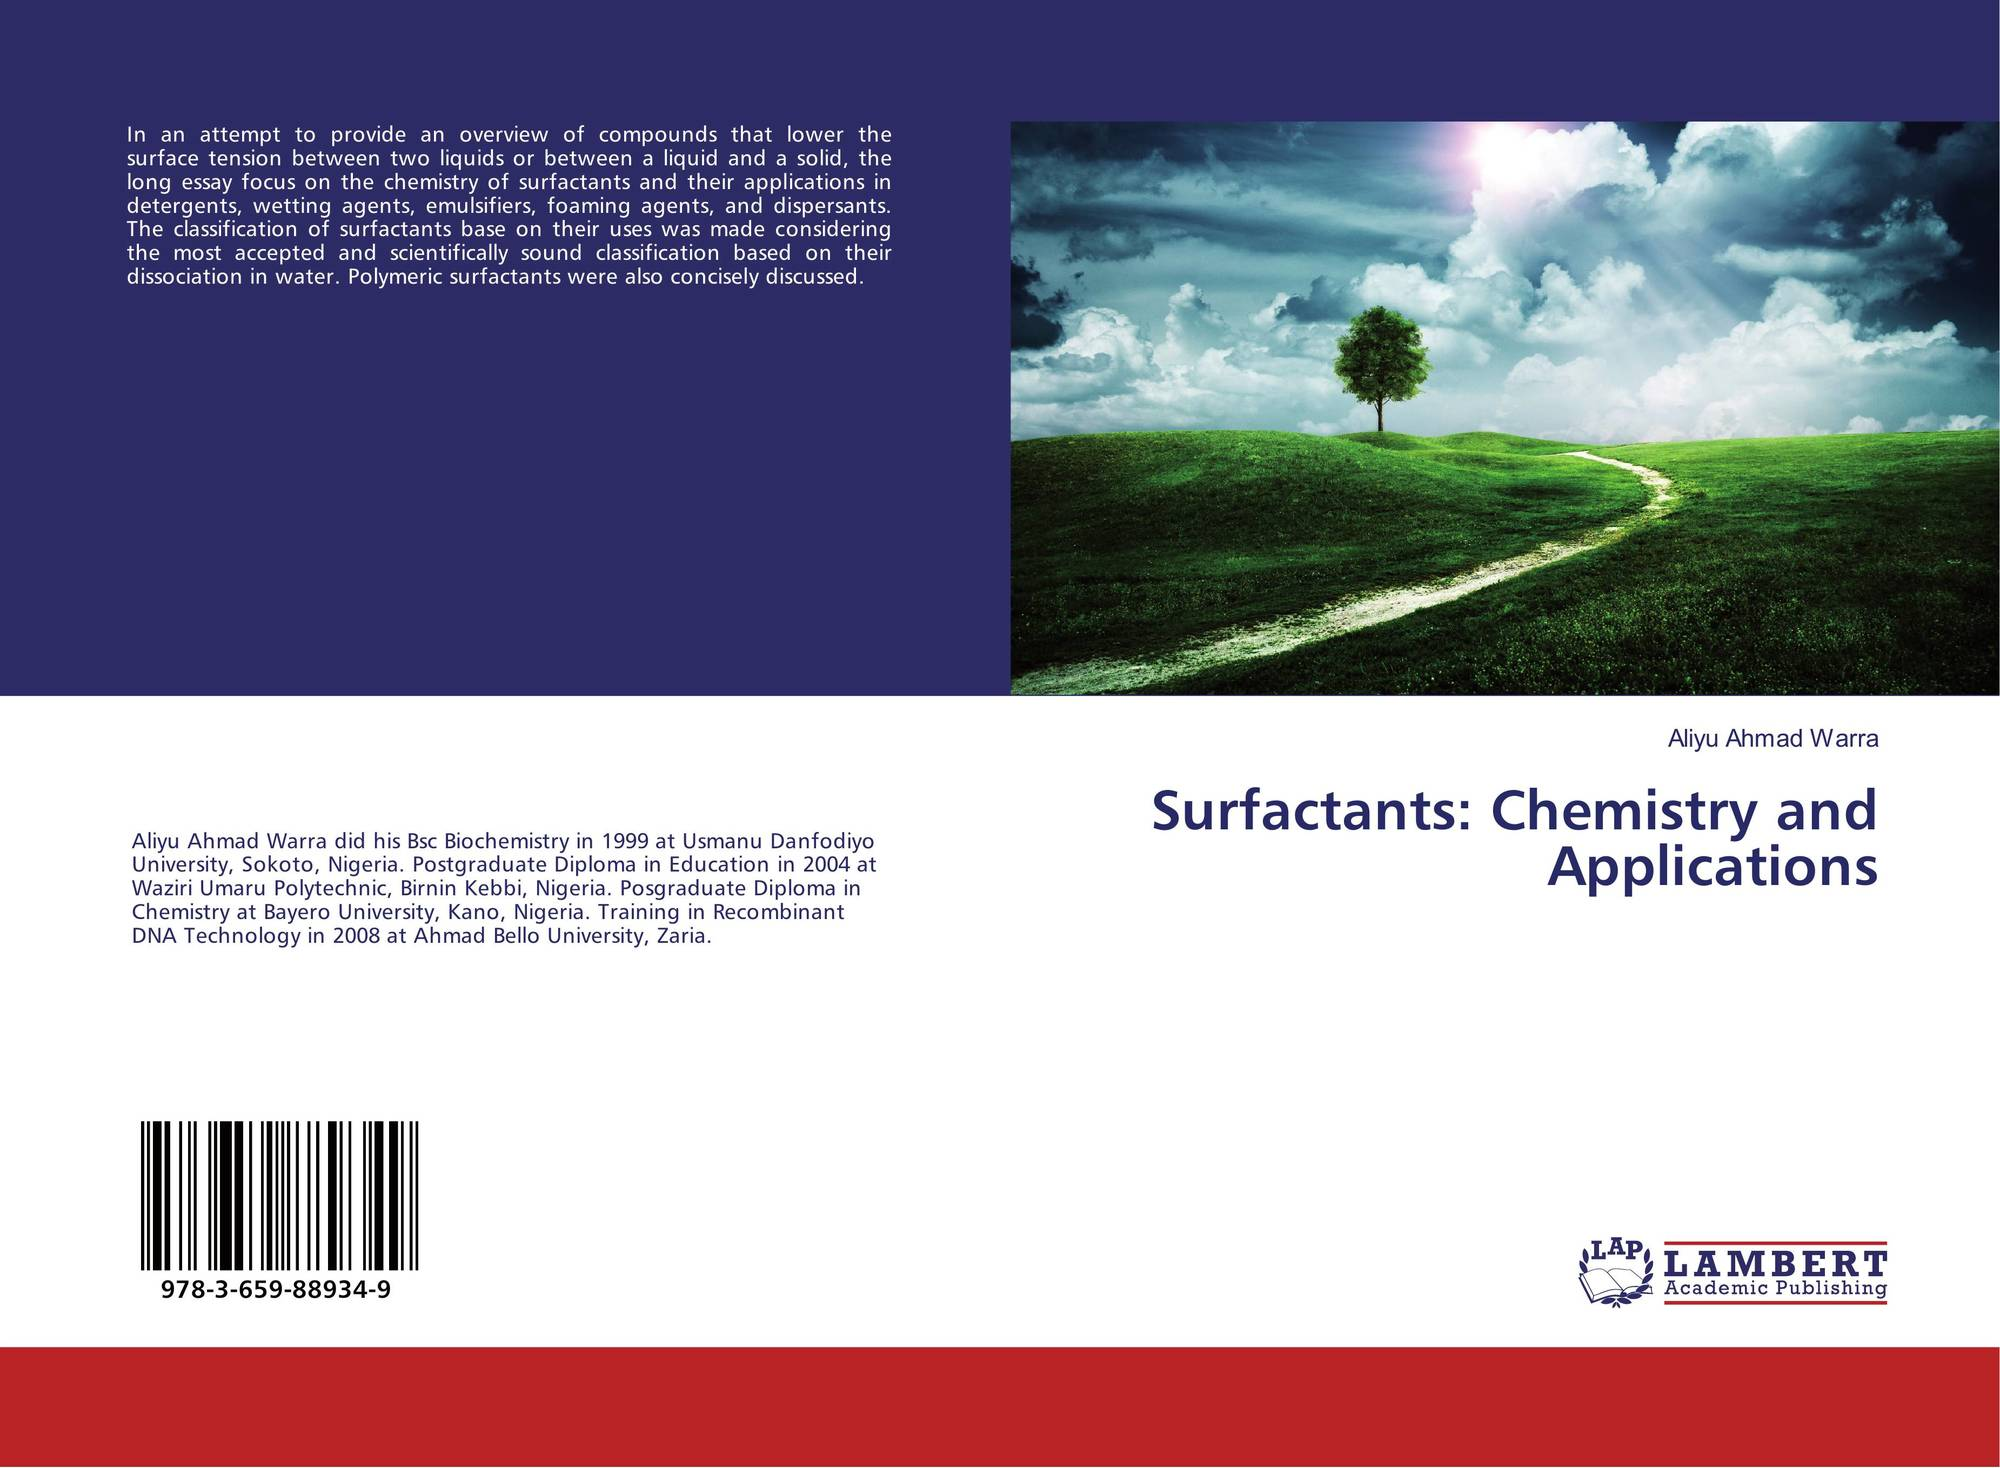 Surfactants: Chemistry and Applications, 978-3-659-88934-9